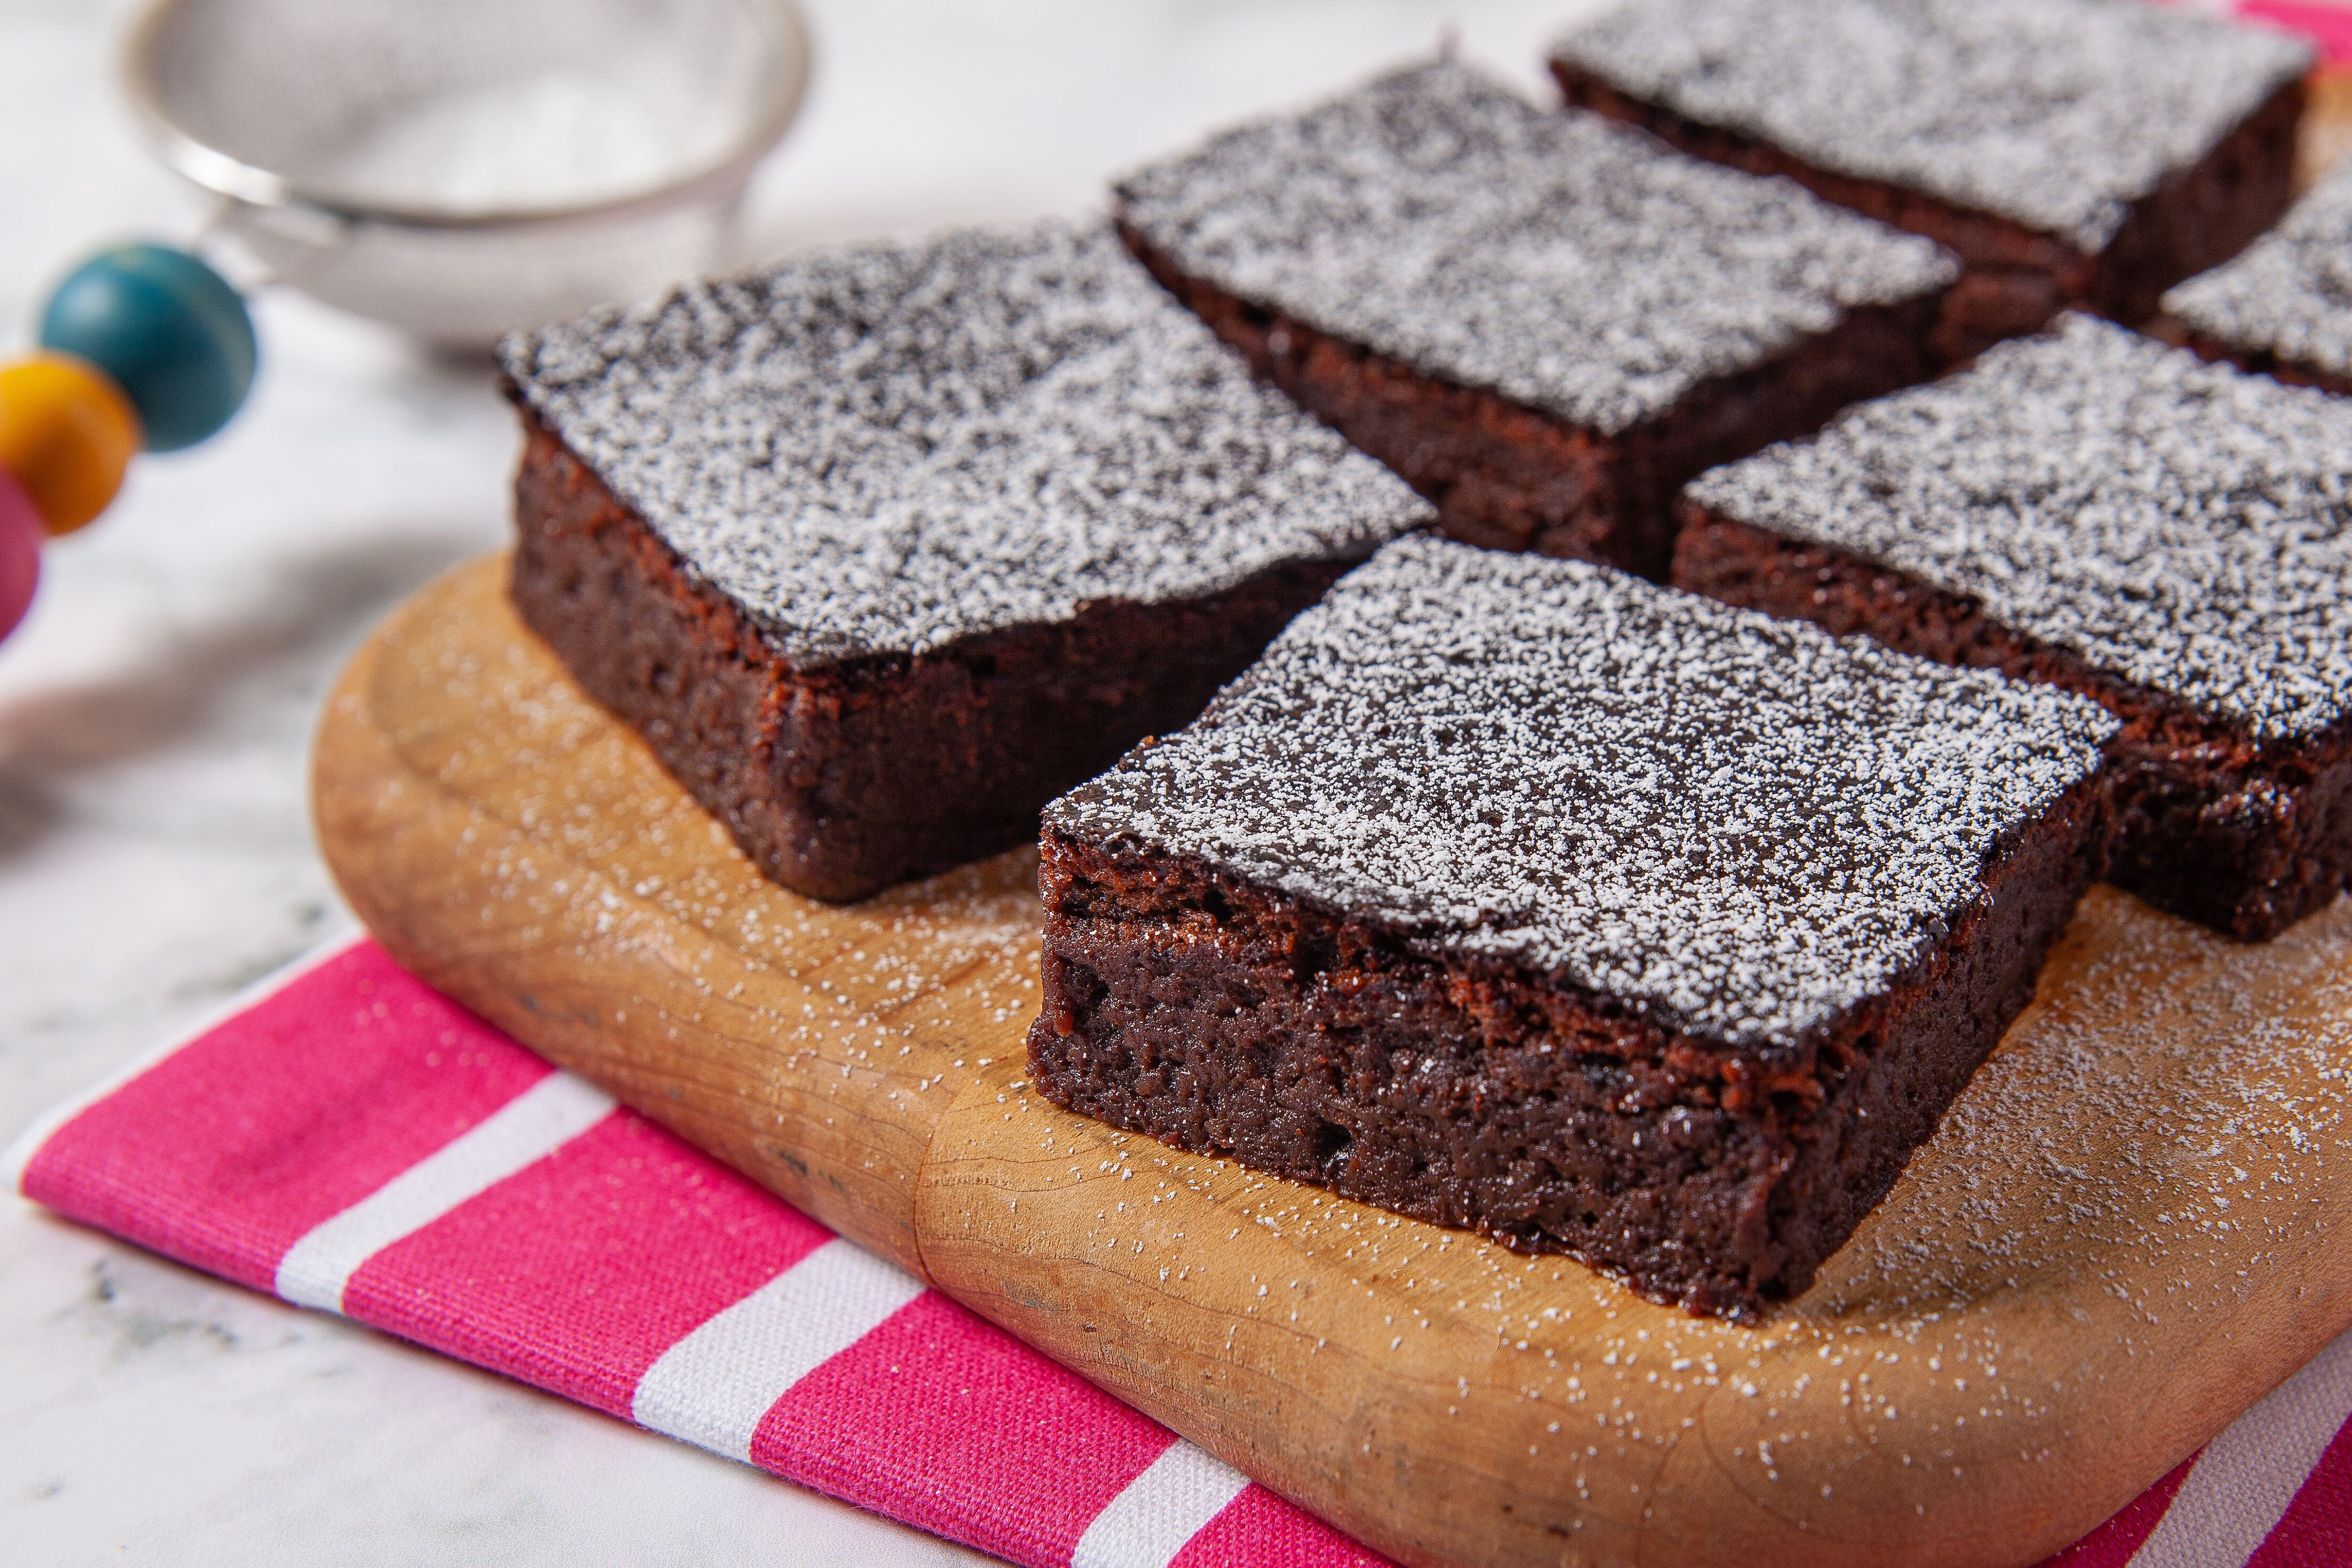 To Make the Most Decadent Chocolate Brownies, Skip the Flour